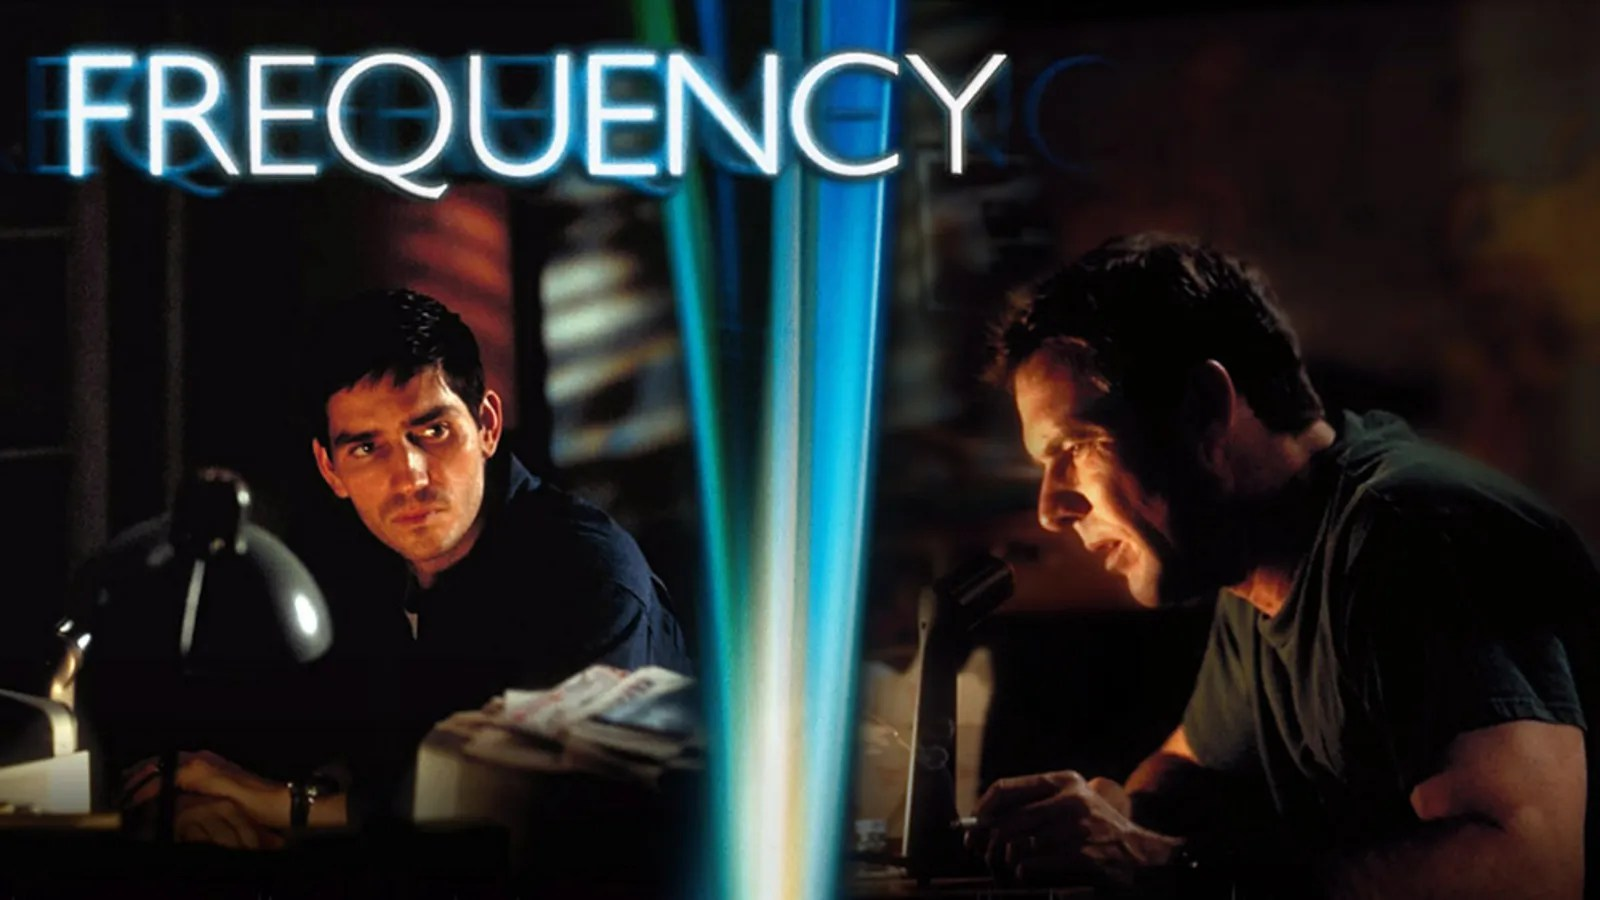 Frequency Tv Supernatural Showrunner To Reboot Frequency Into A Tv Series